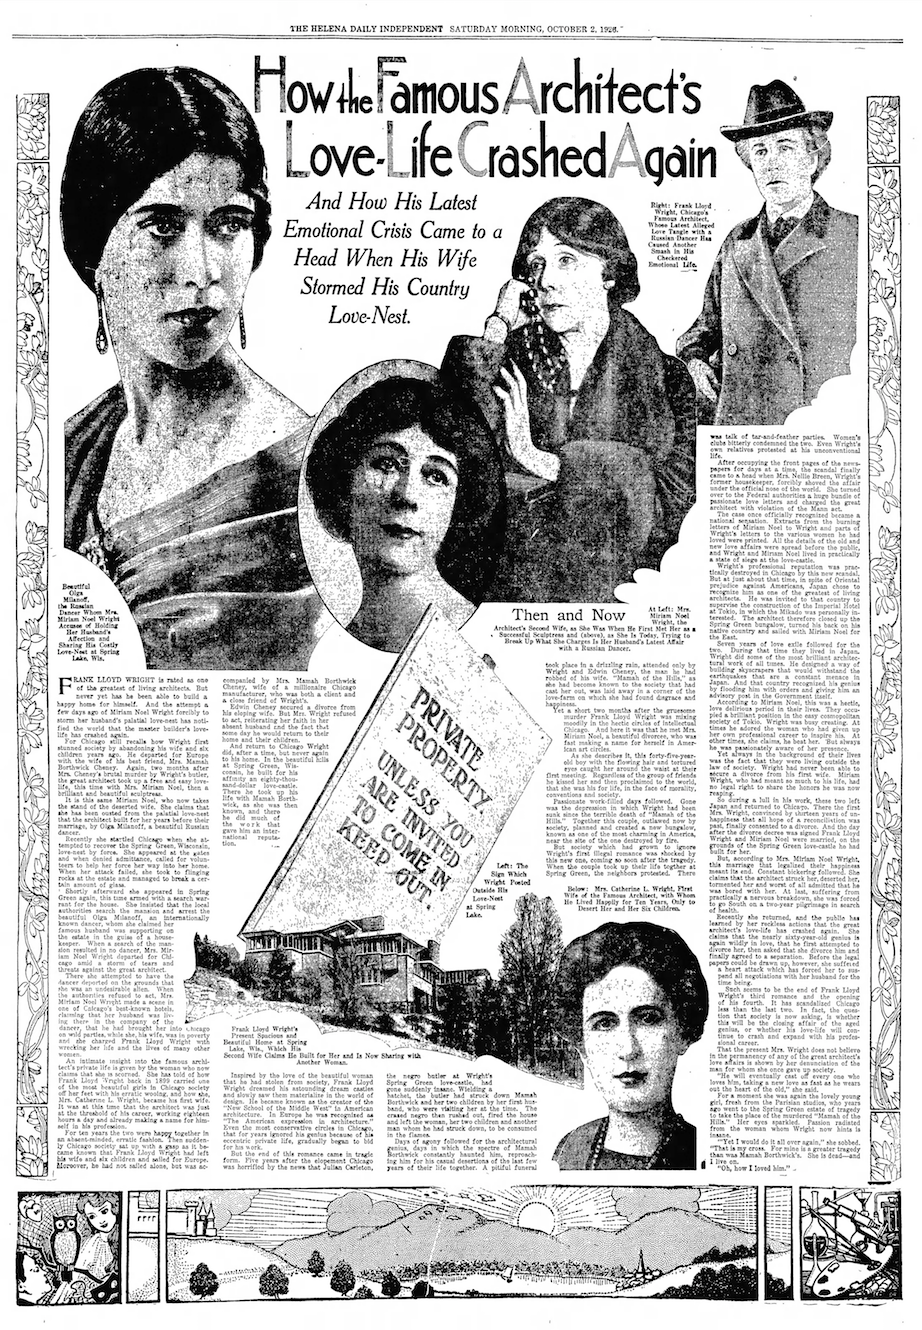 Helena Daily Independent , October 2, 1926.  [Public domain.]